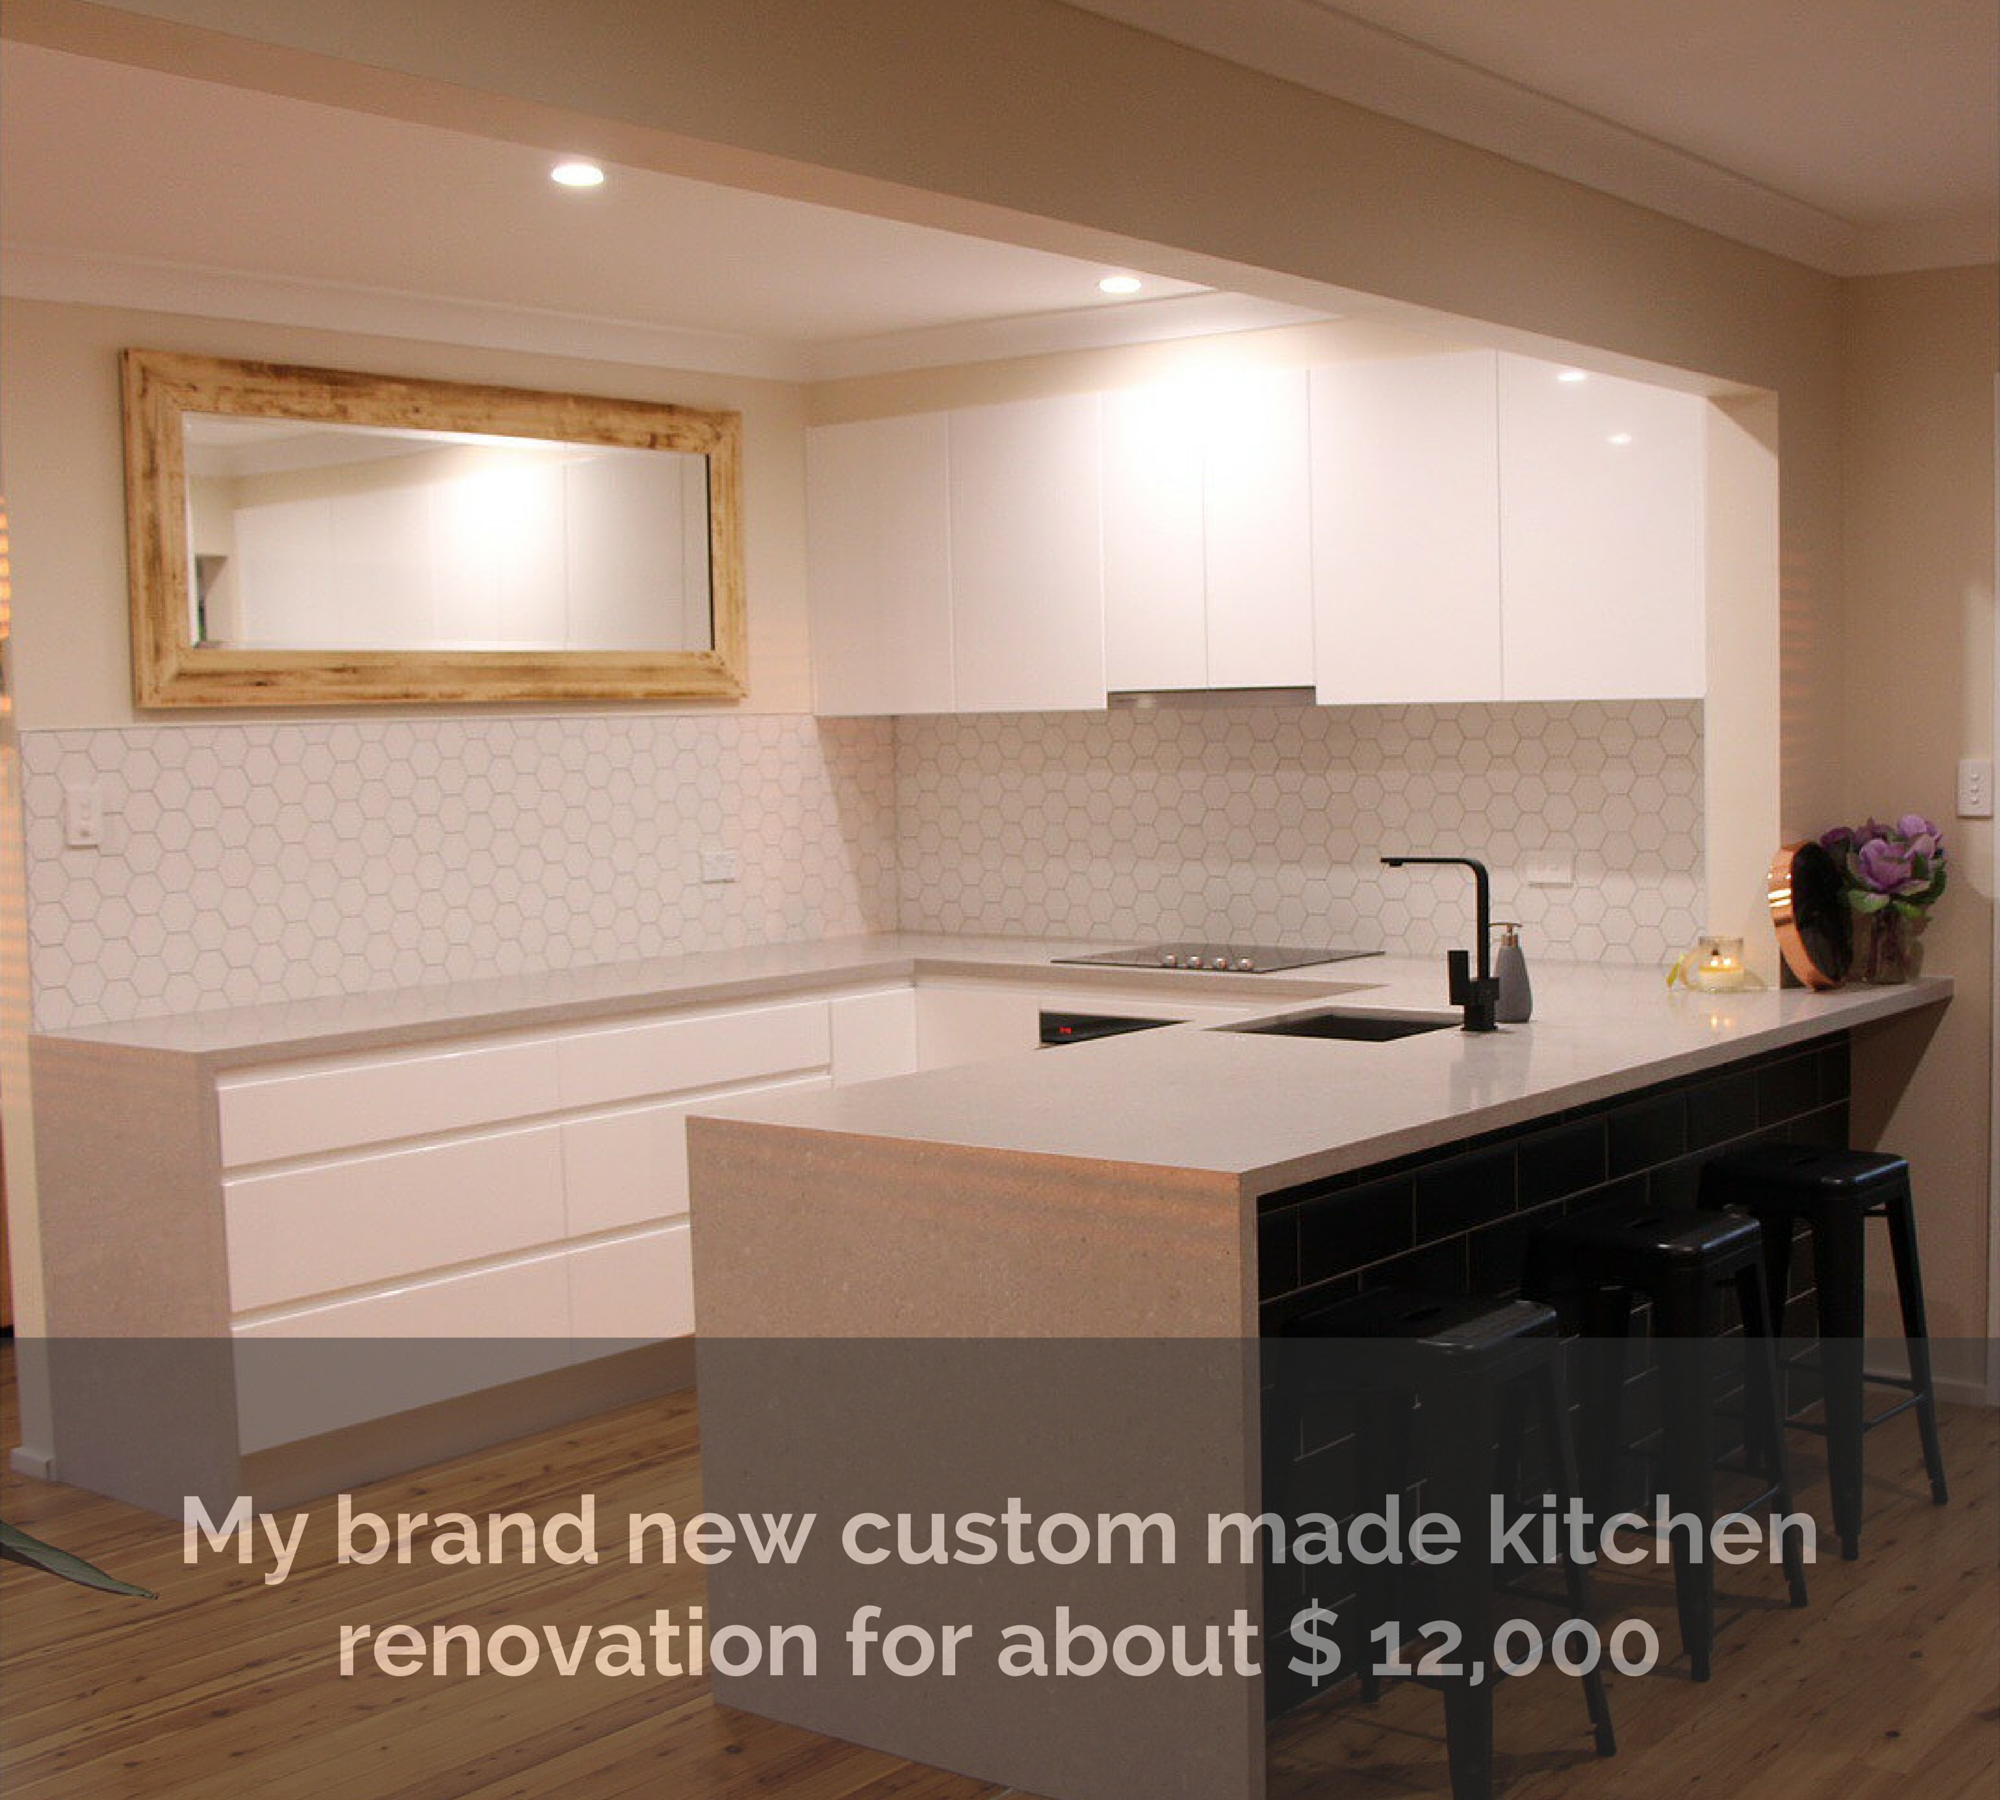 Complete Custom kitchen refurbish story for about $12,000 | Paradise ...